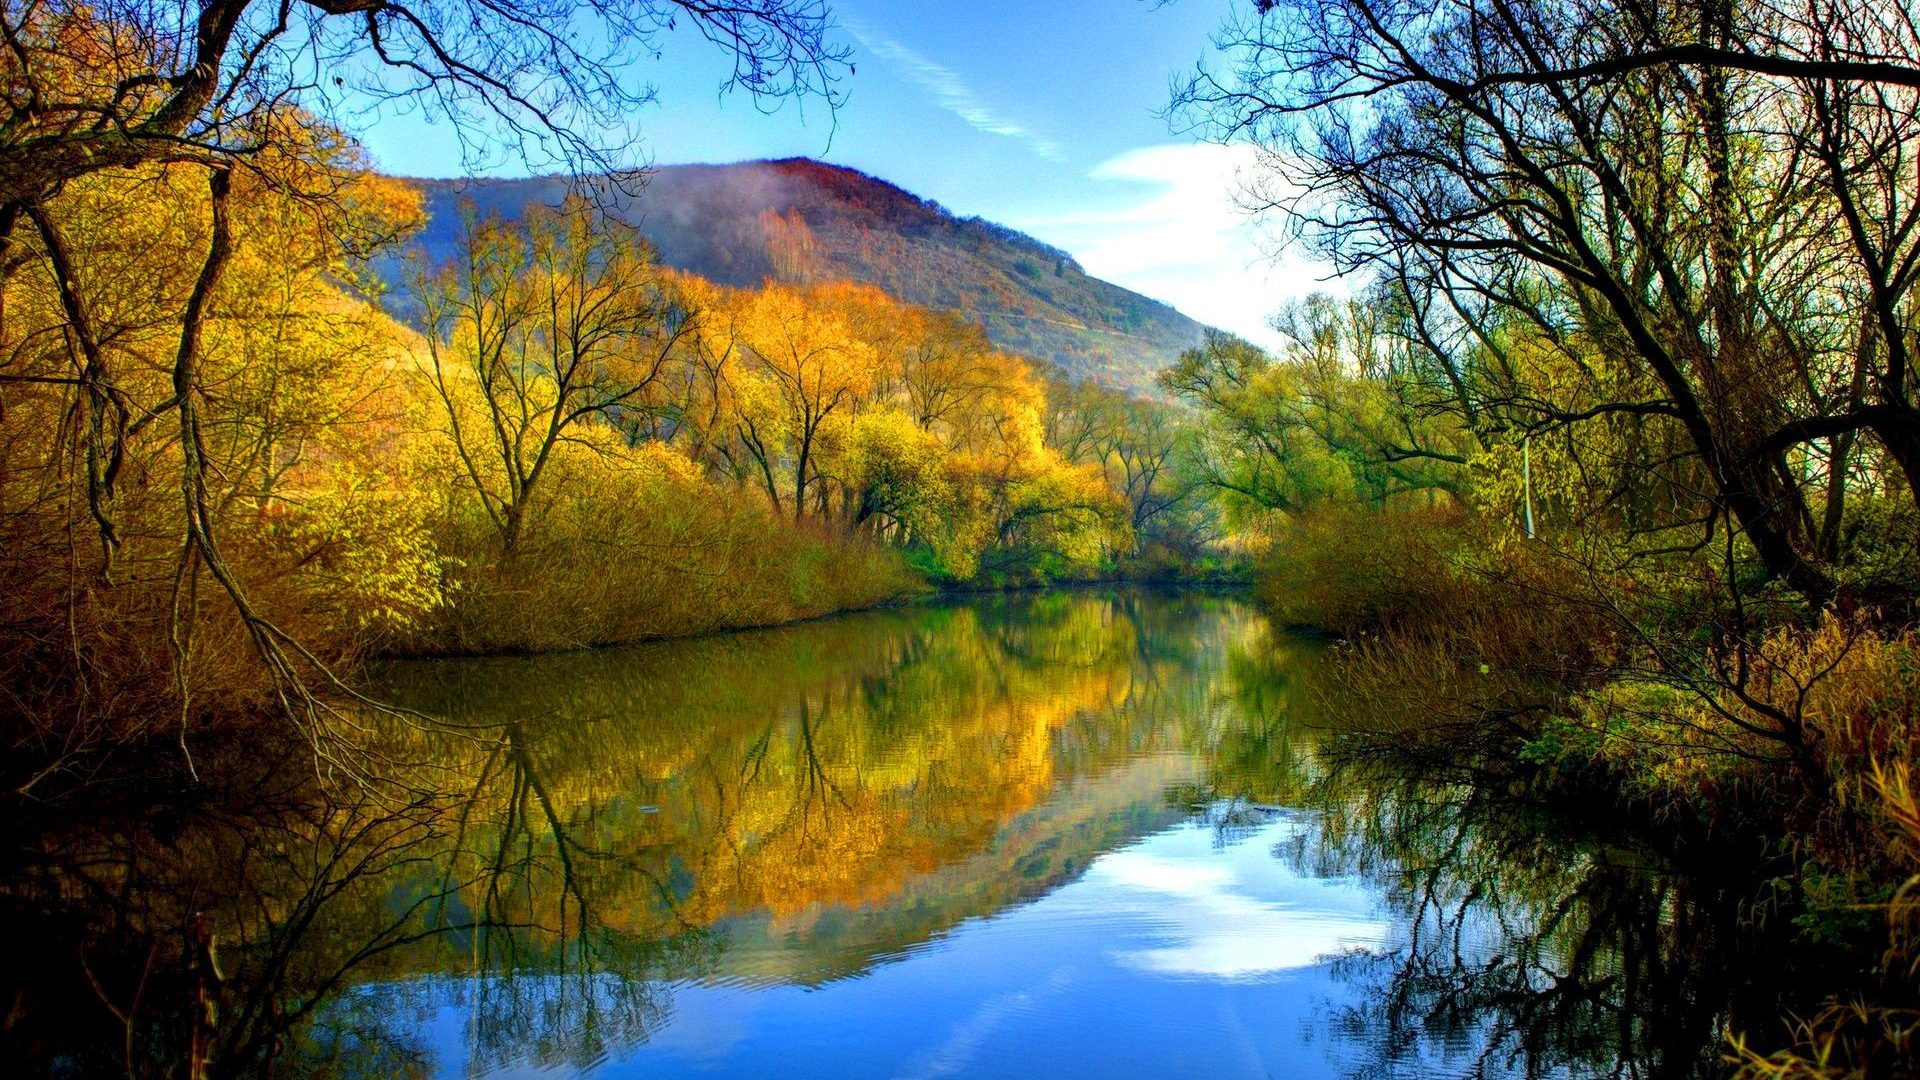 Fall Autumn Hd Wallpaper 1920x1080 Fall River Peaceful Water Willow With Yellow Leaves Blue